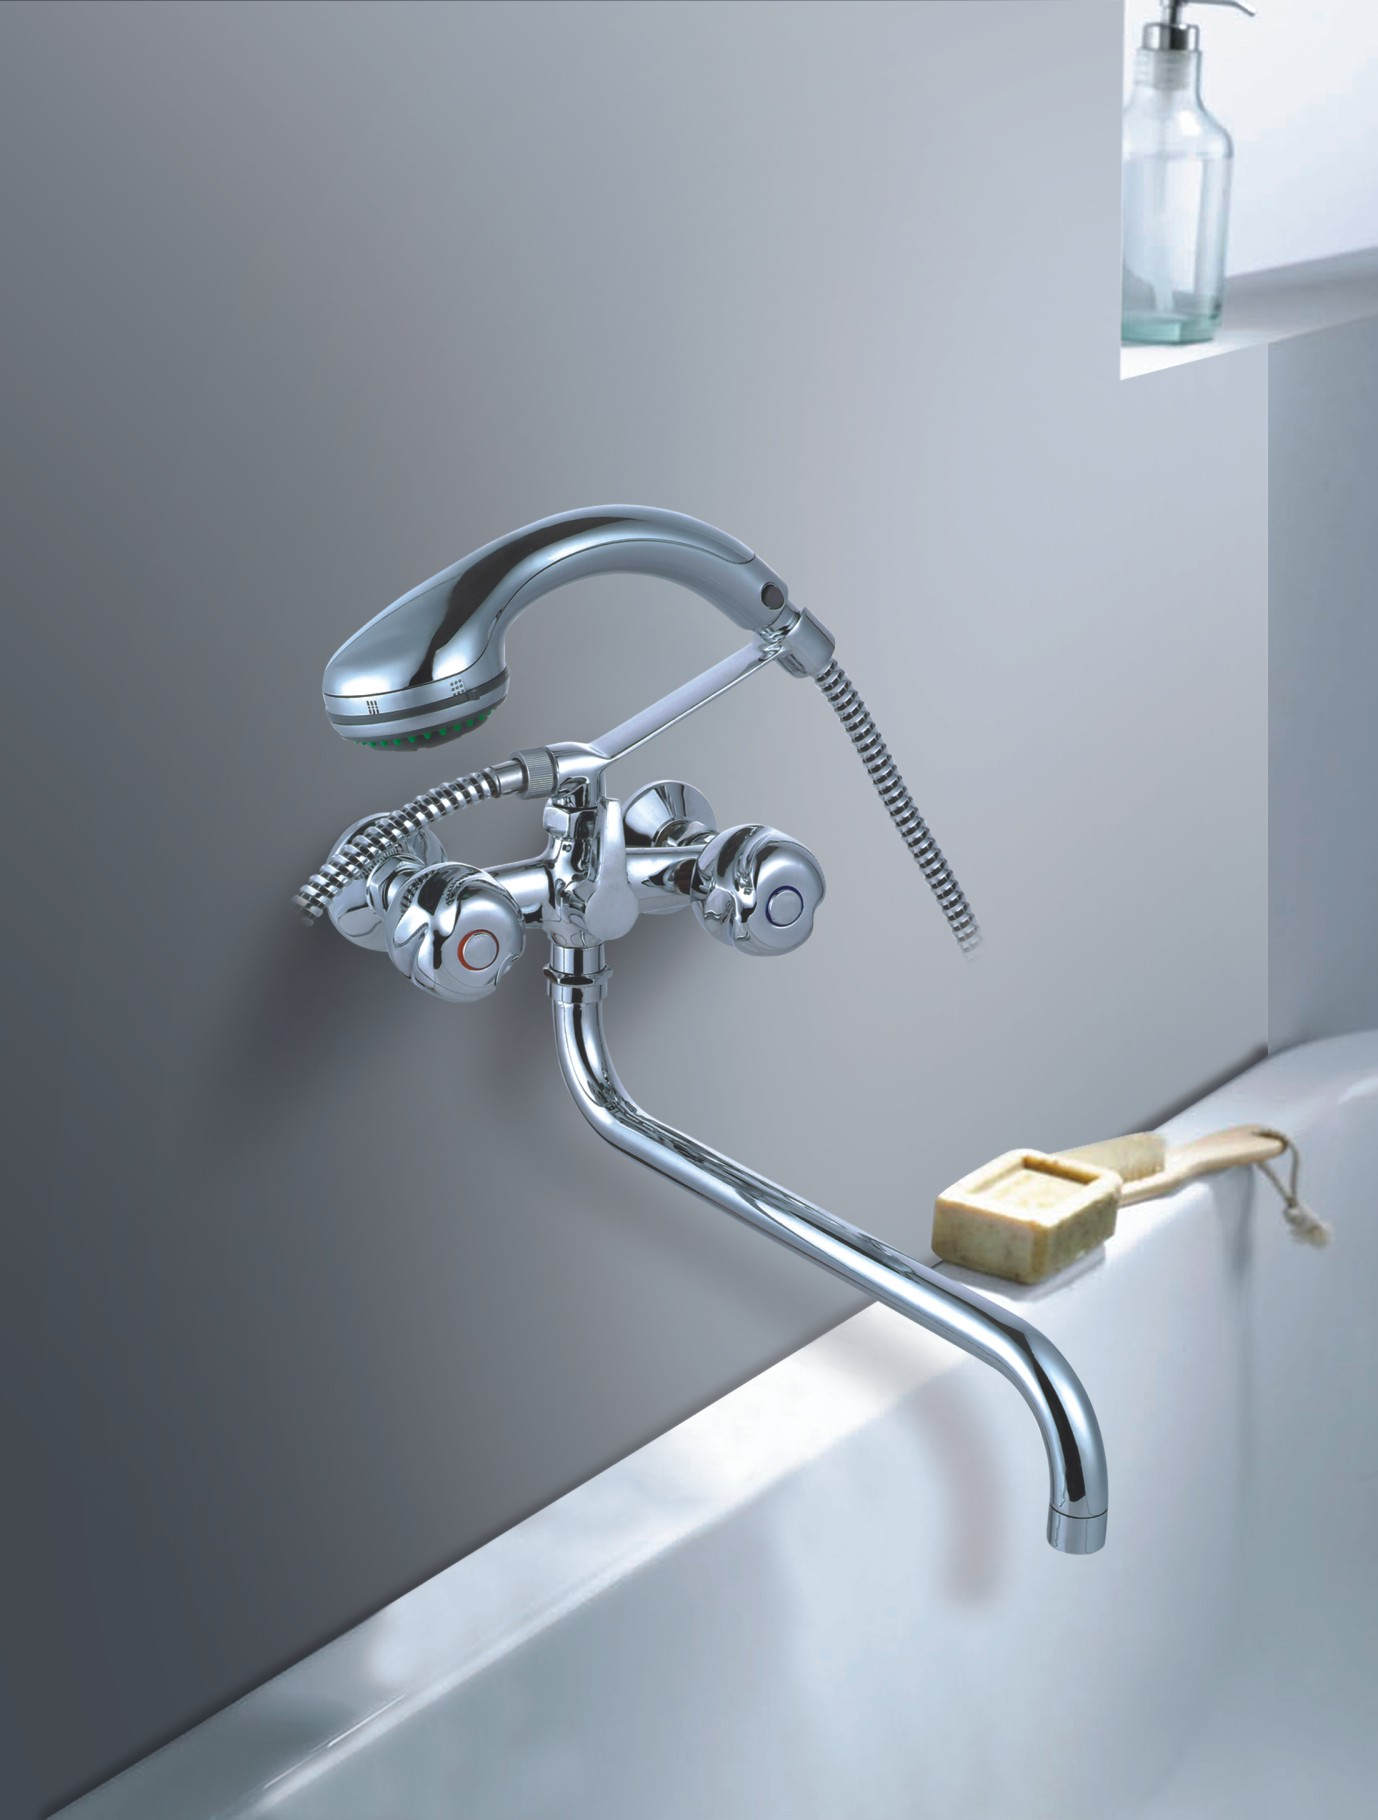 everyday adam a fix knob faucet revealed to handle inside stripped household how bathtub slipping